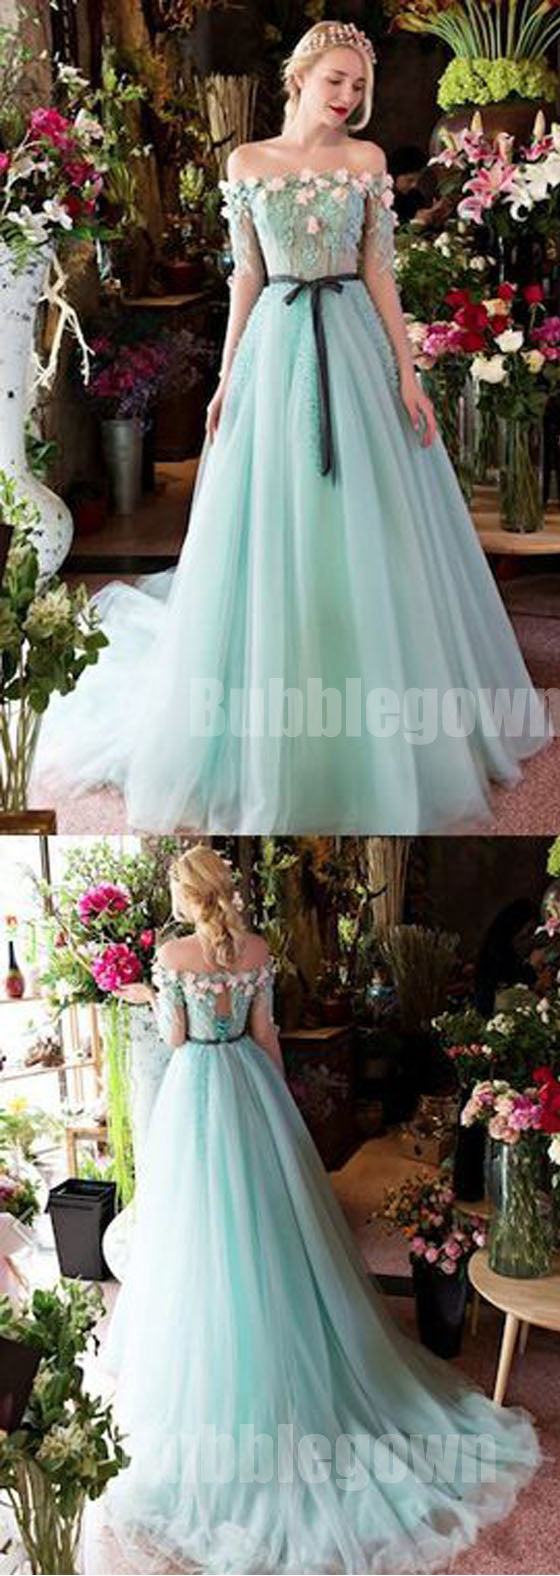 Off the Shoulder Charming Half Sleeves Long Evening Prom Dresses ...